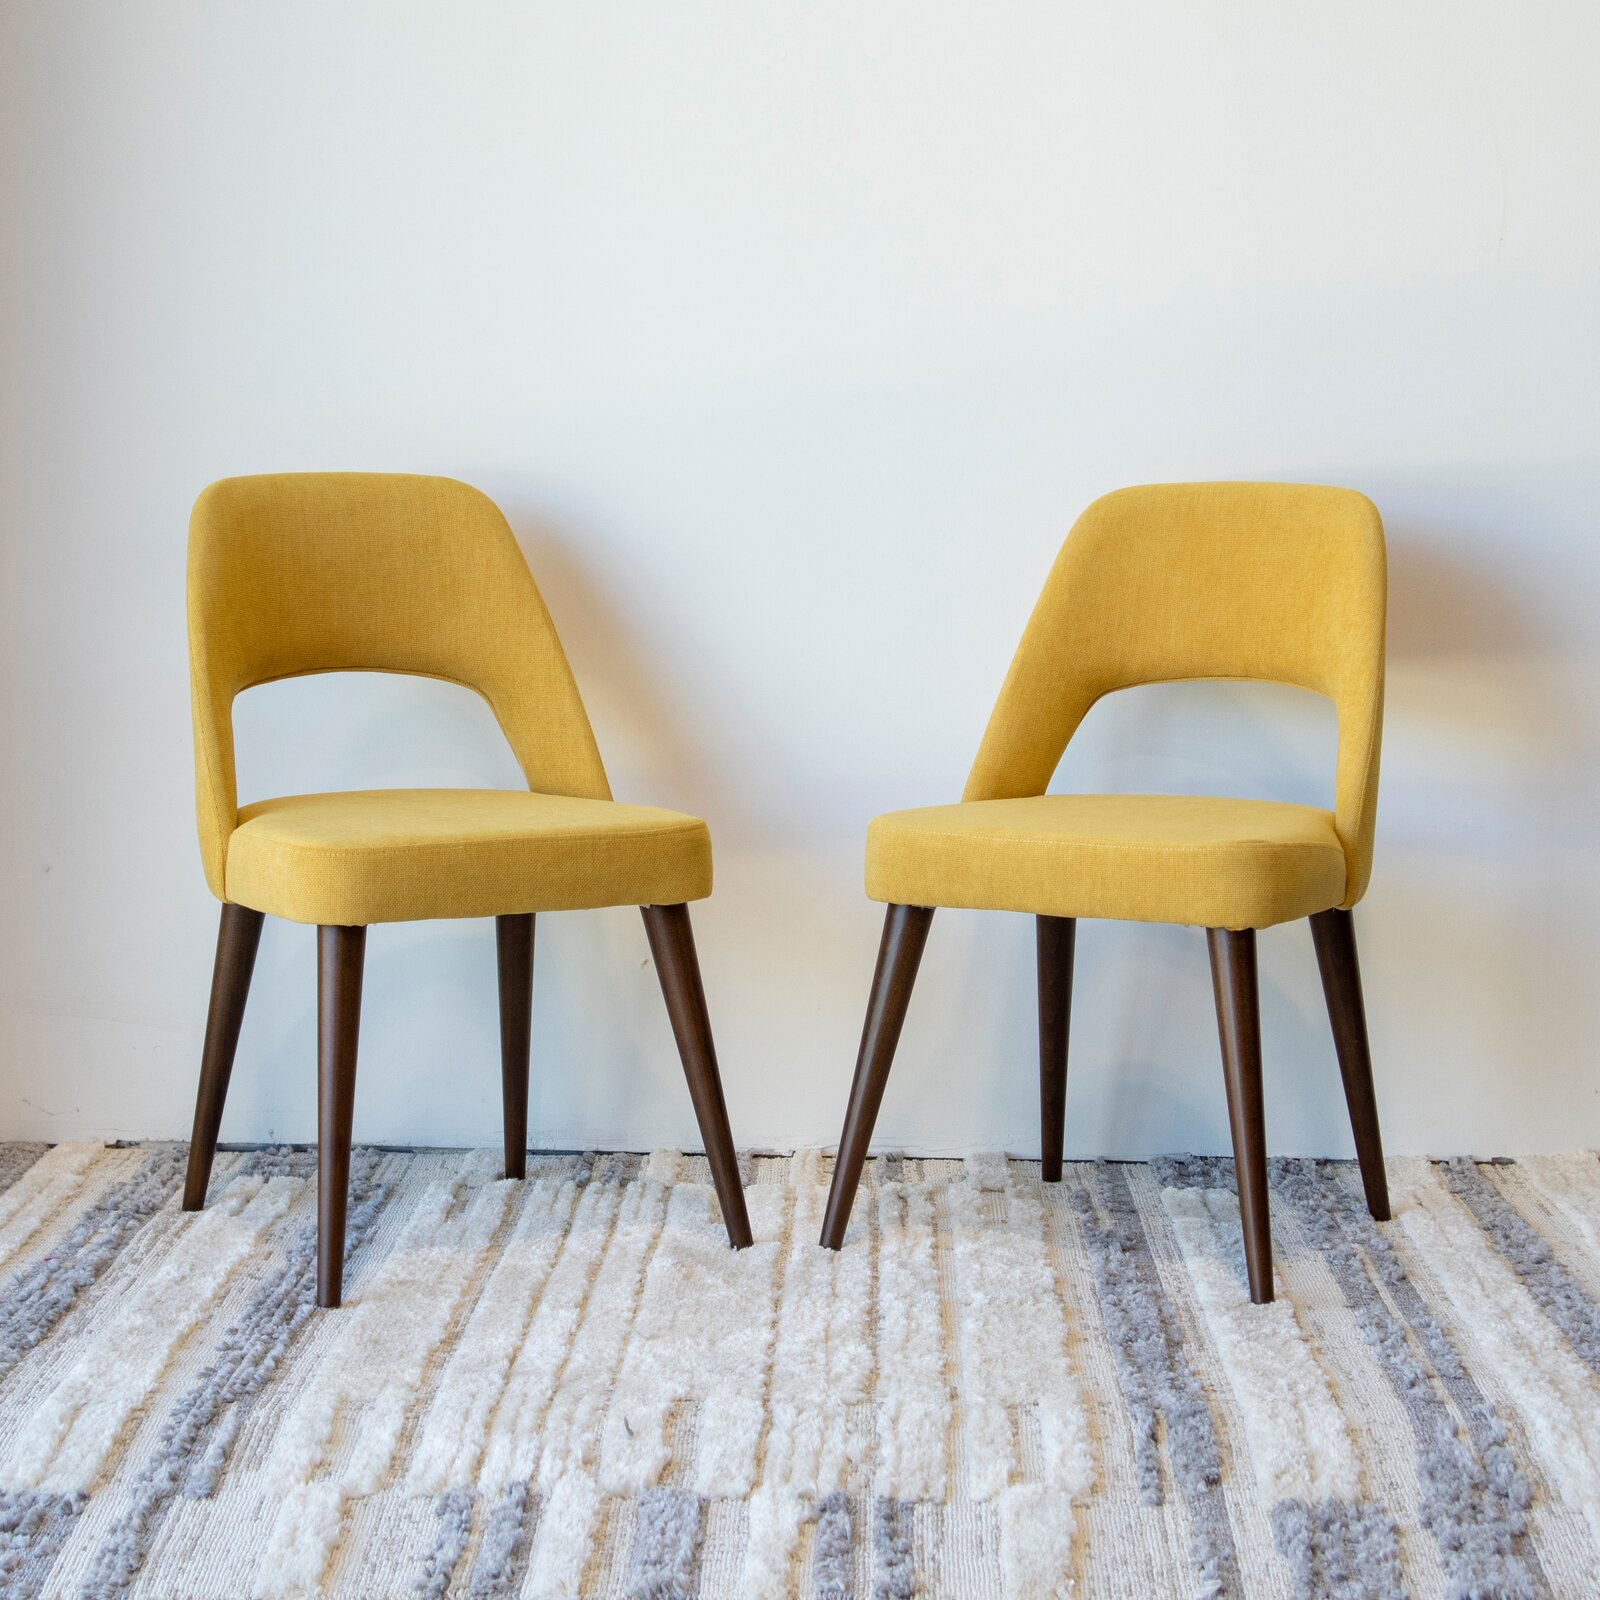 linen-upholstered-dining-chairs-bright-yellow-fabric-tapered-wood-legs-retro-dining-room-furniture-inspiration